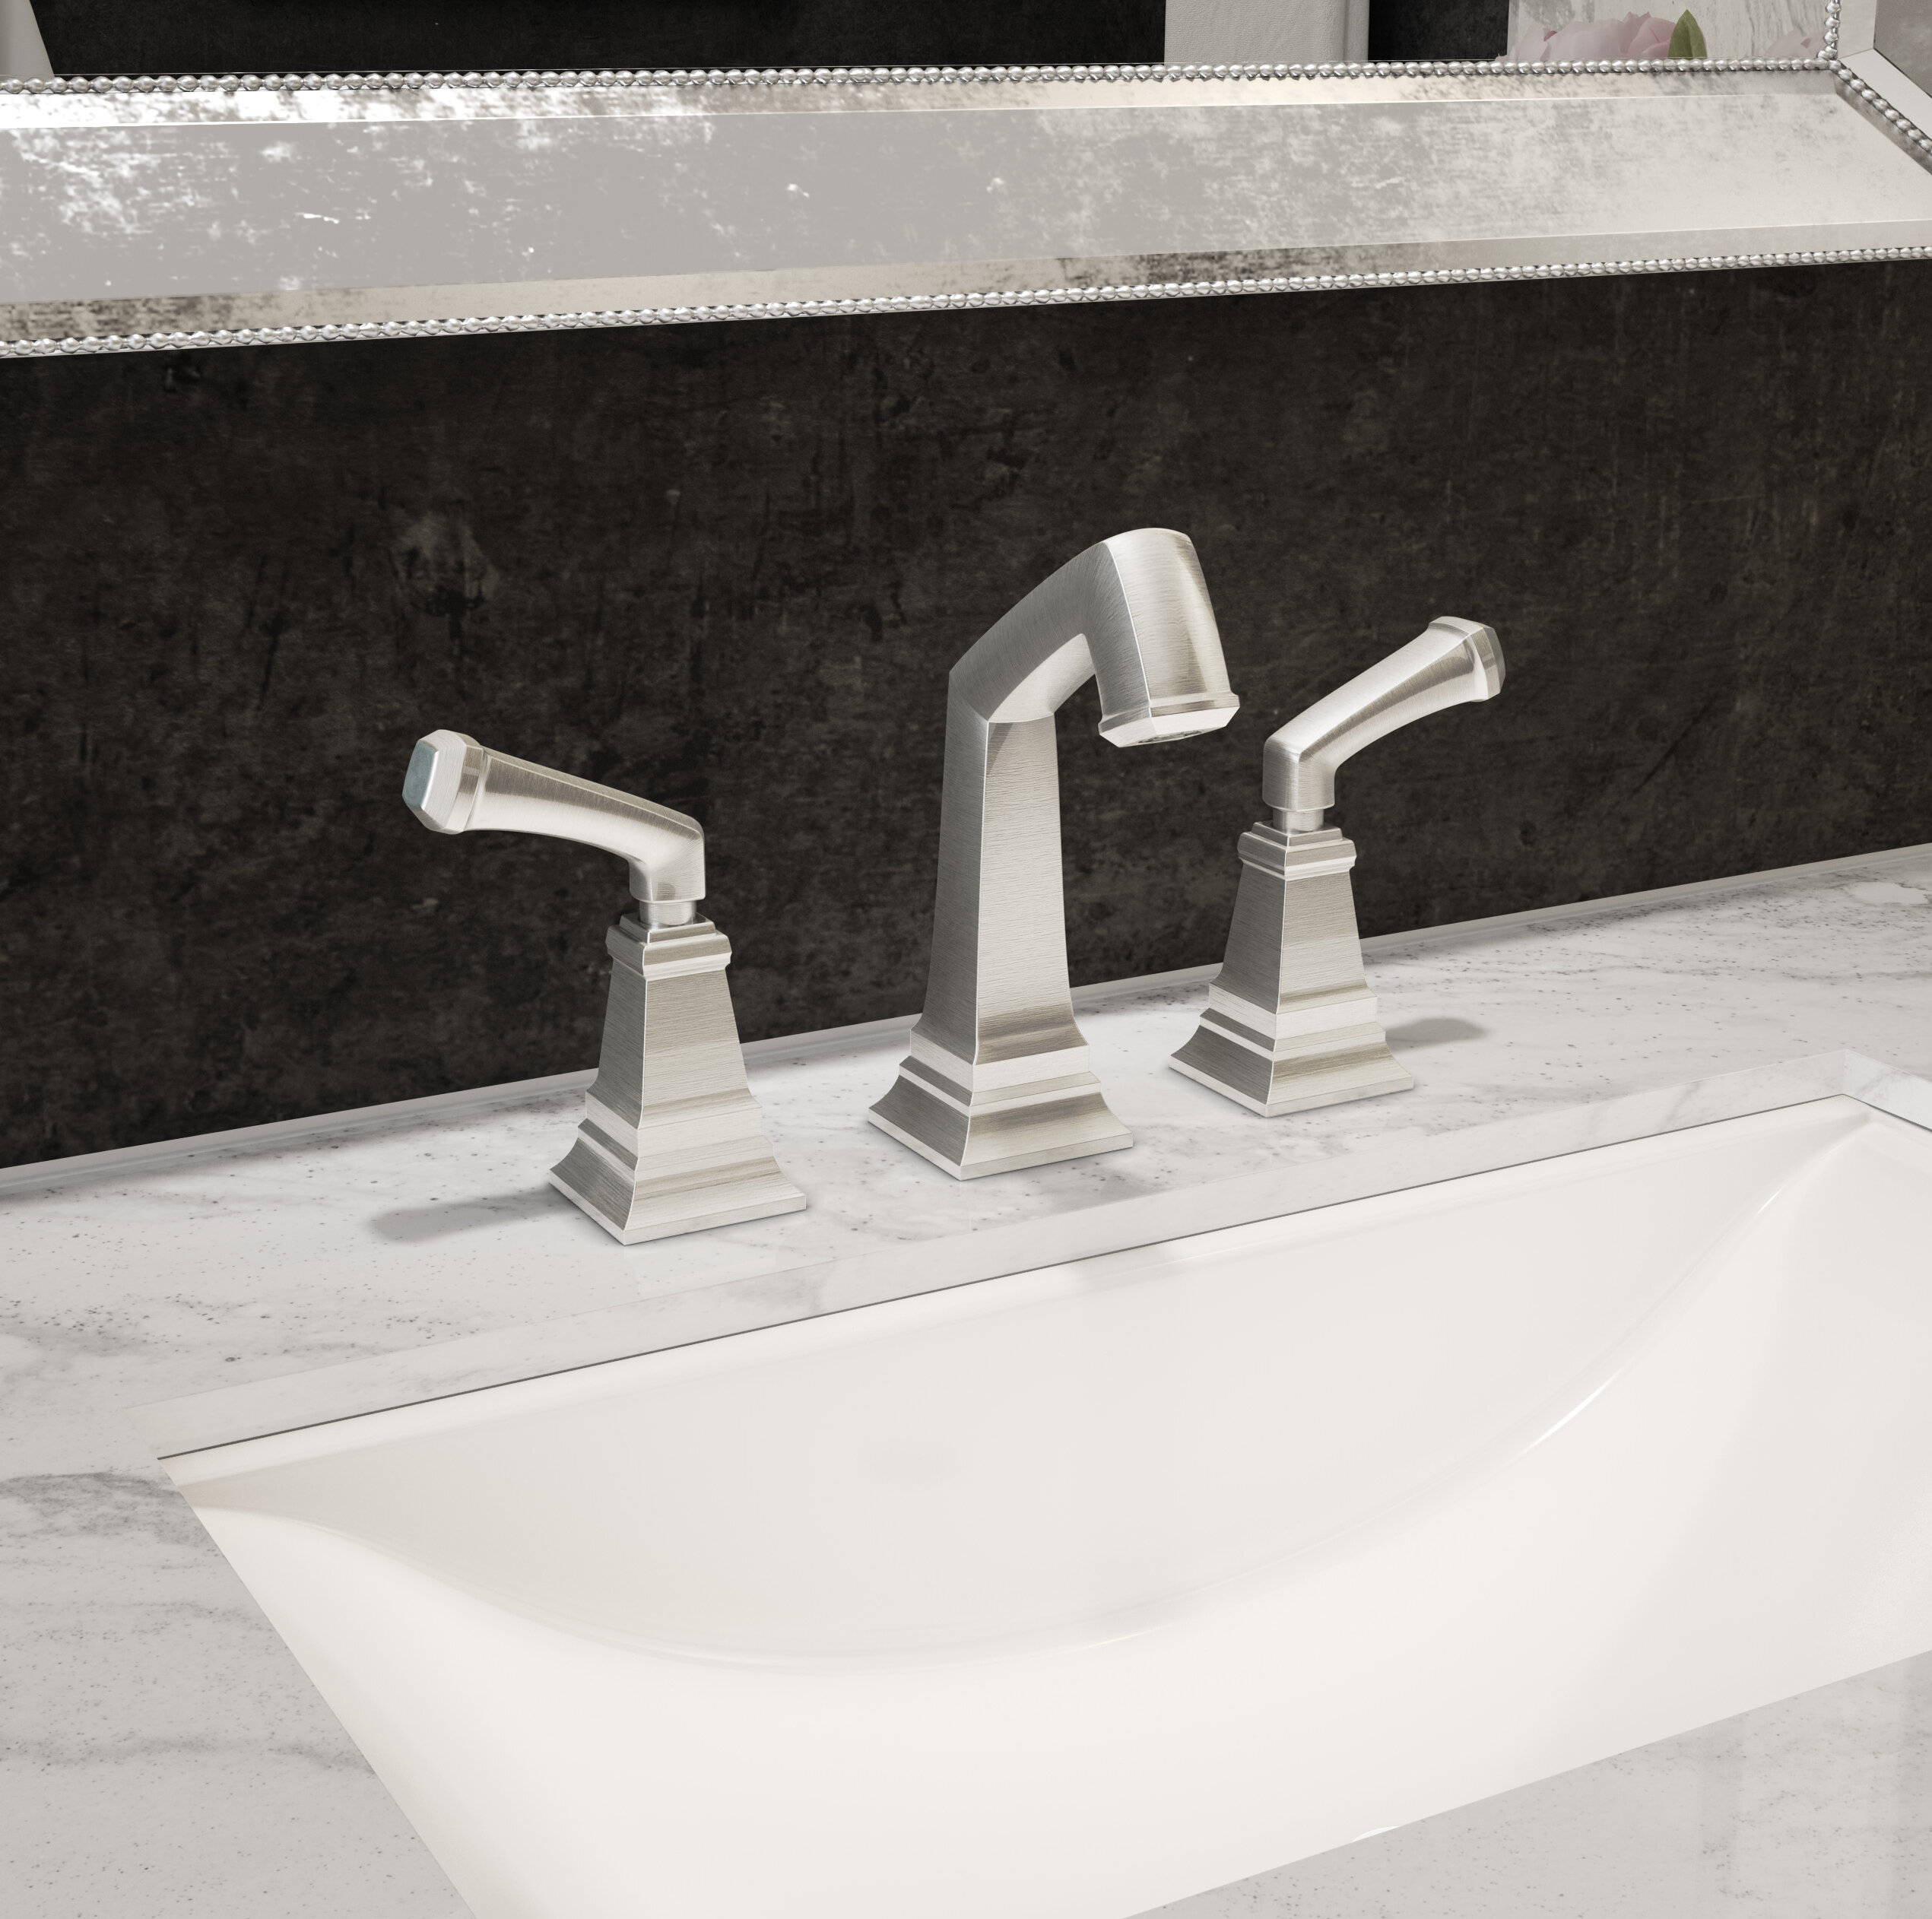 Symmons Oxford Centerset Bathroom Faucet with Drain Assembly | Wayfair